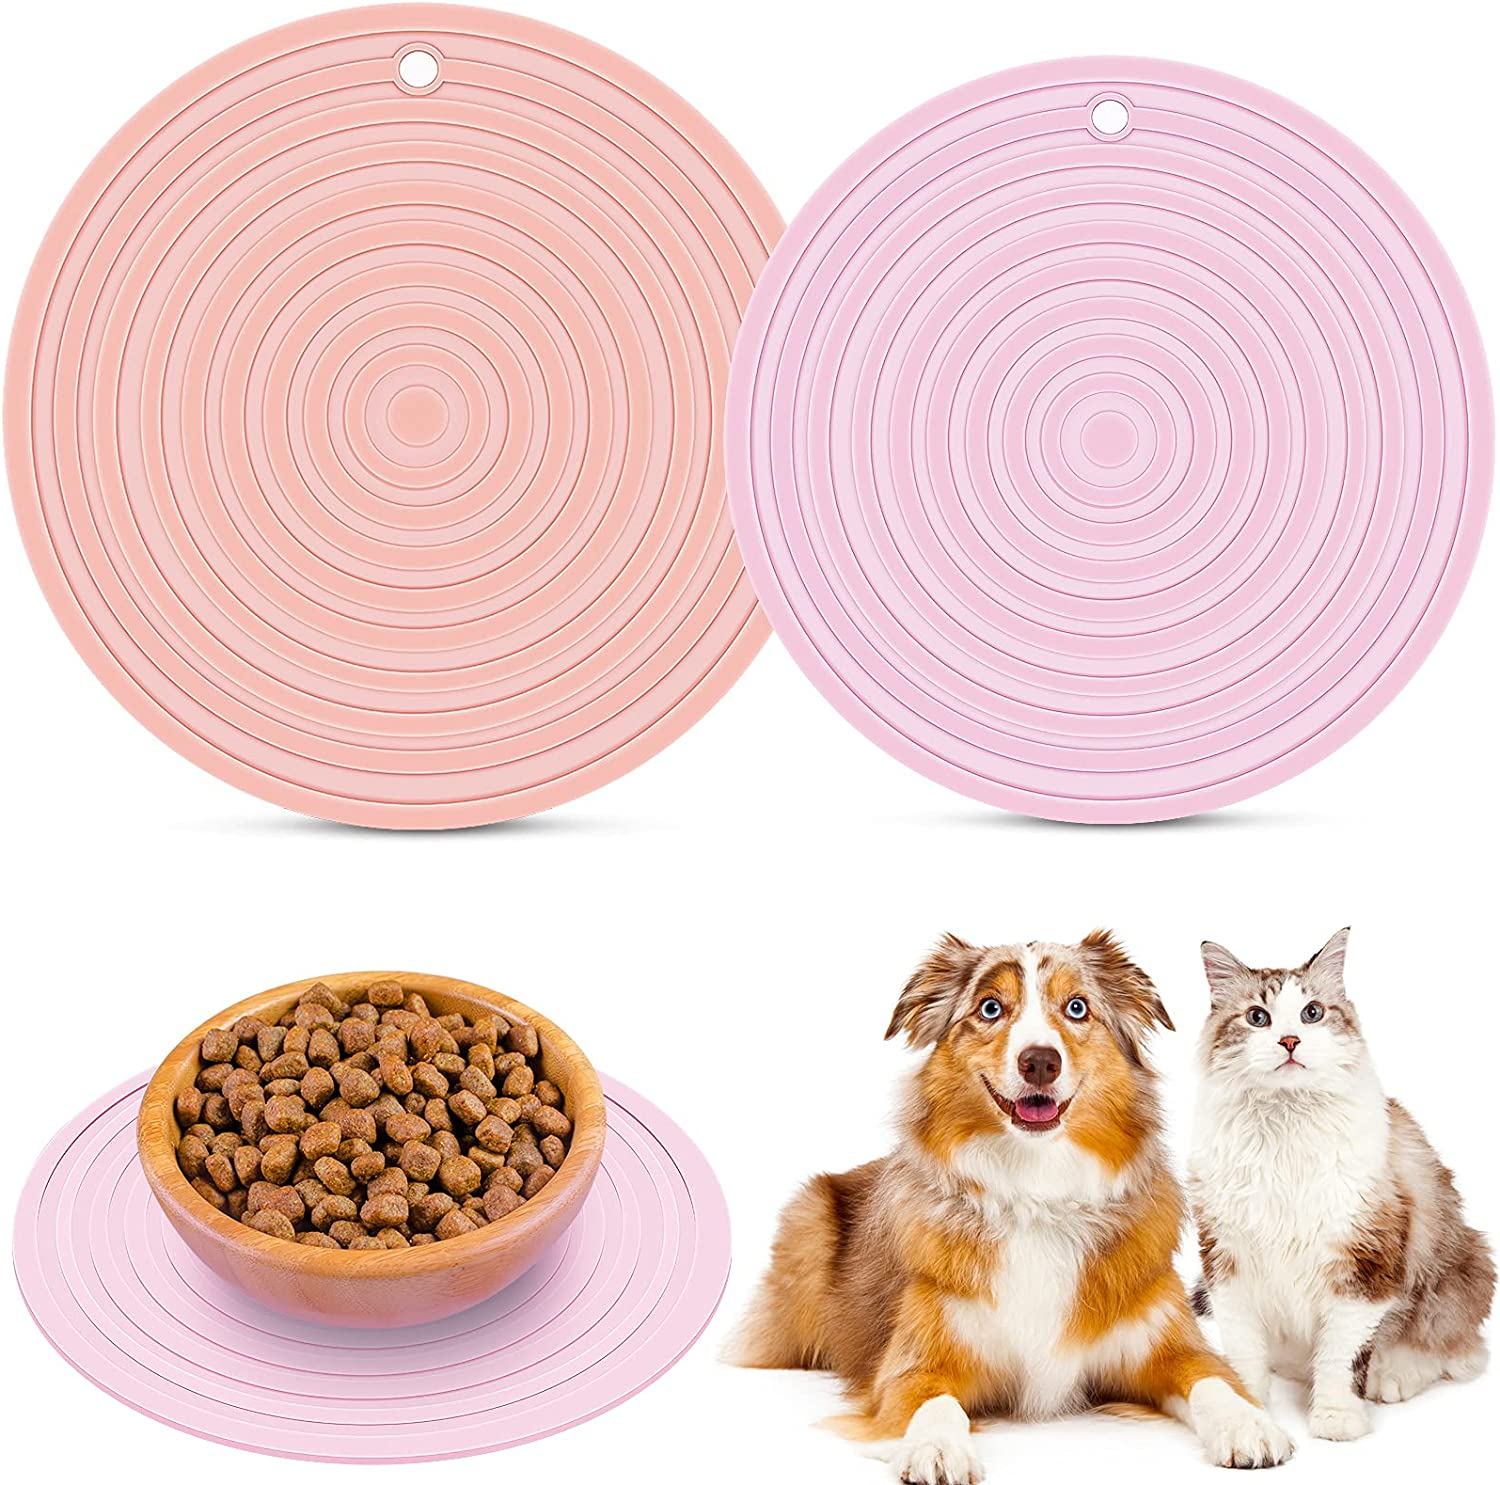 2 Pieces Silicone Pet Food Mat Pet Feeding Mat for Dog and Cat Food Bowl Place-mat Preventing Food and Water Overflow Suitable for Medium and Small Pet, Pink, 9.5 x 9.5 Inches and 7.1 x 7.1 Inches